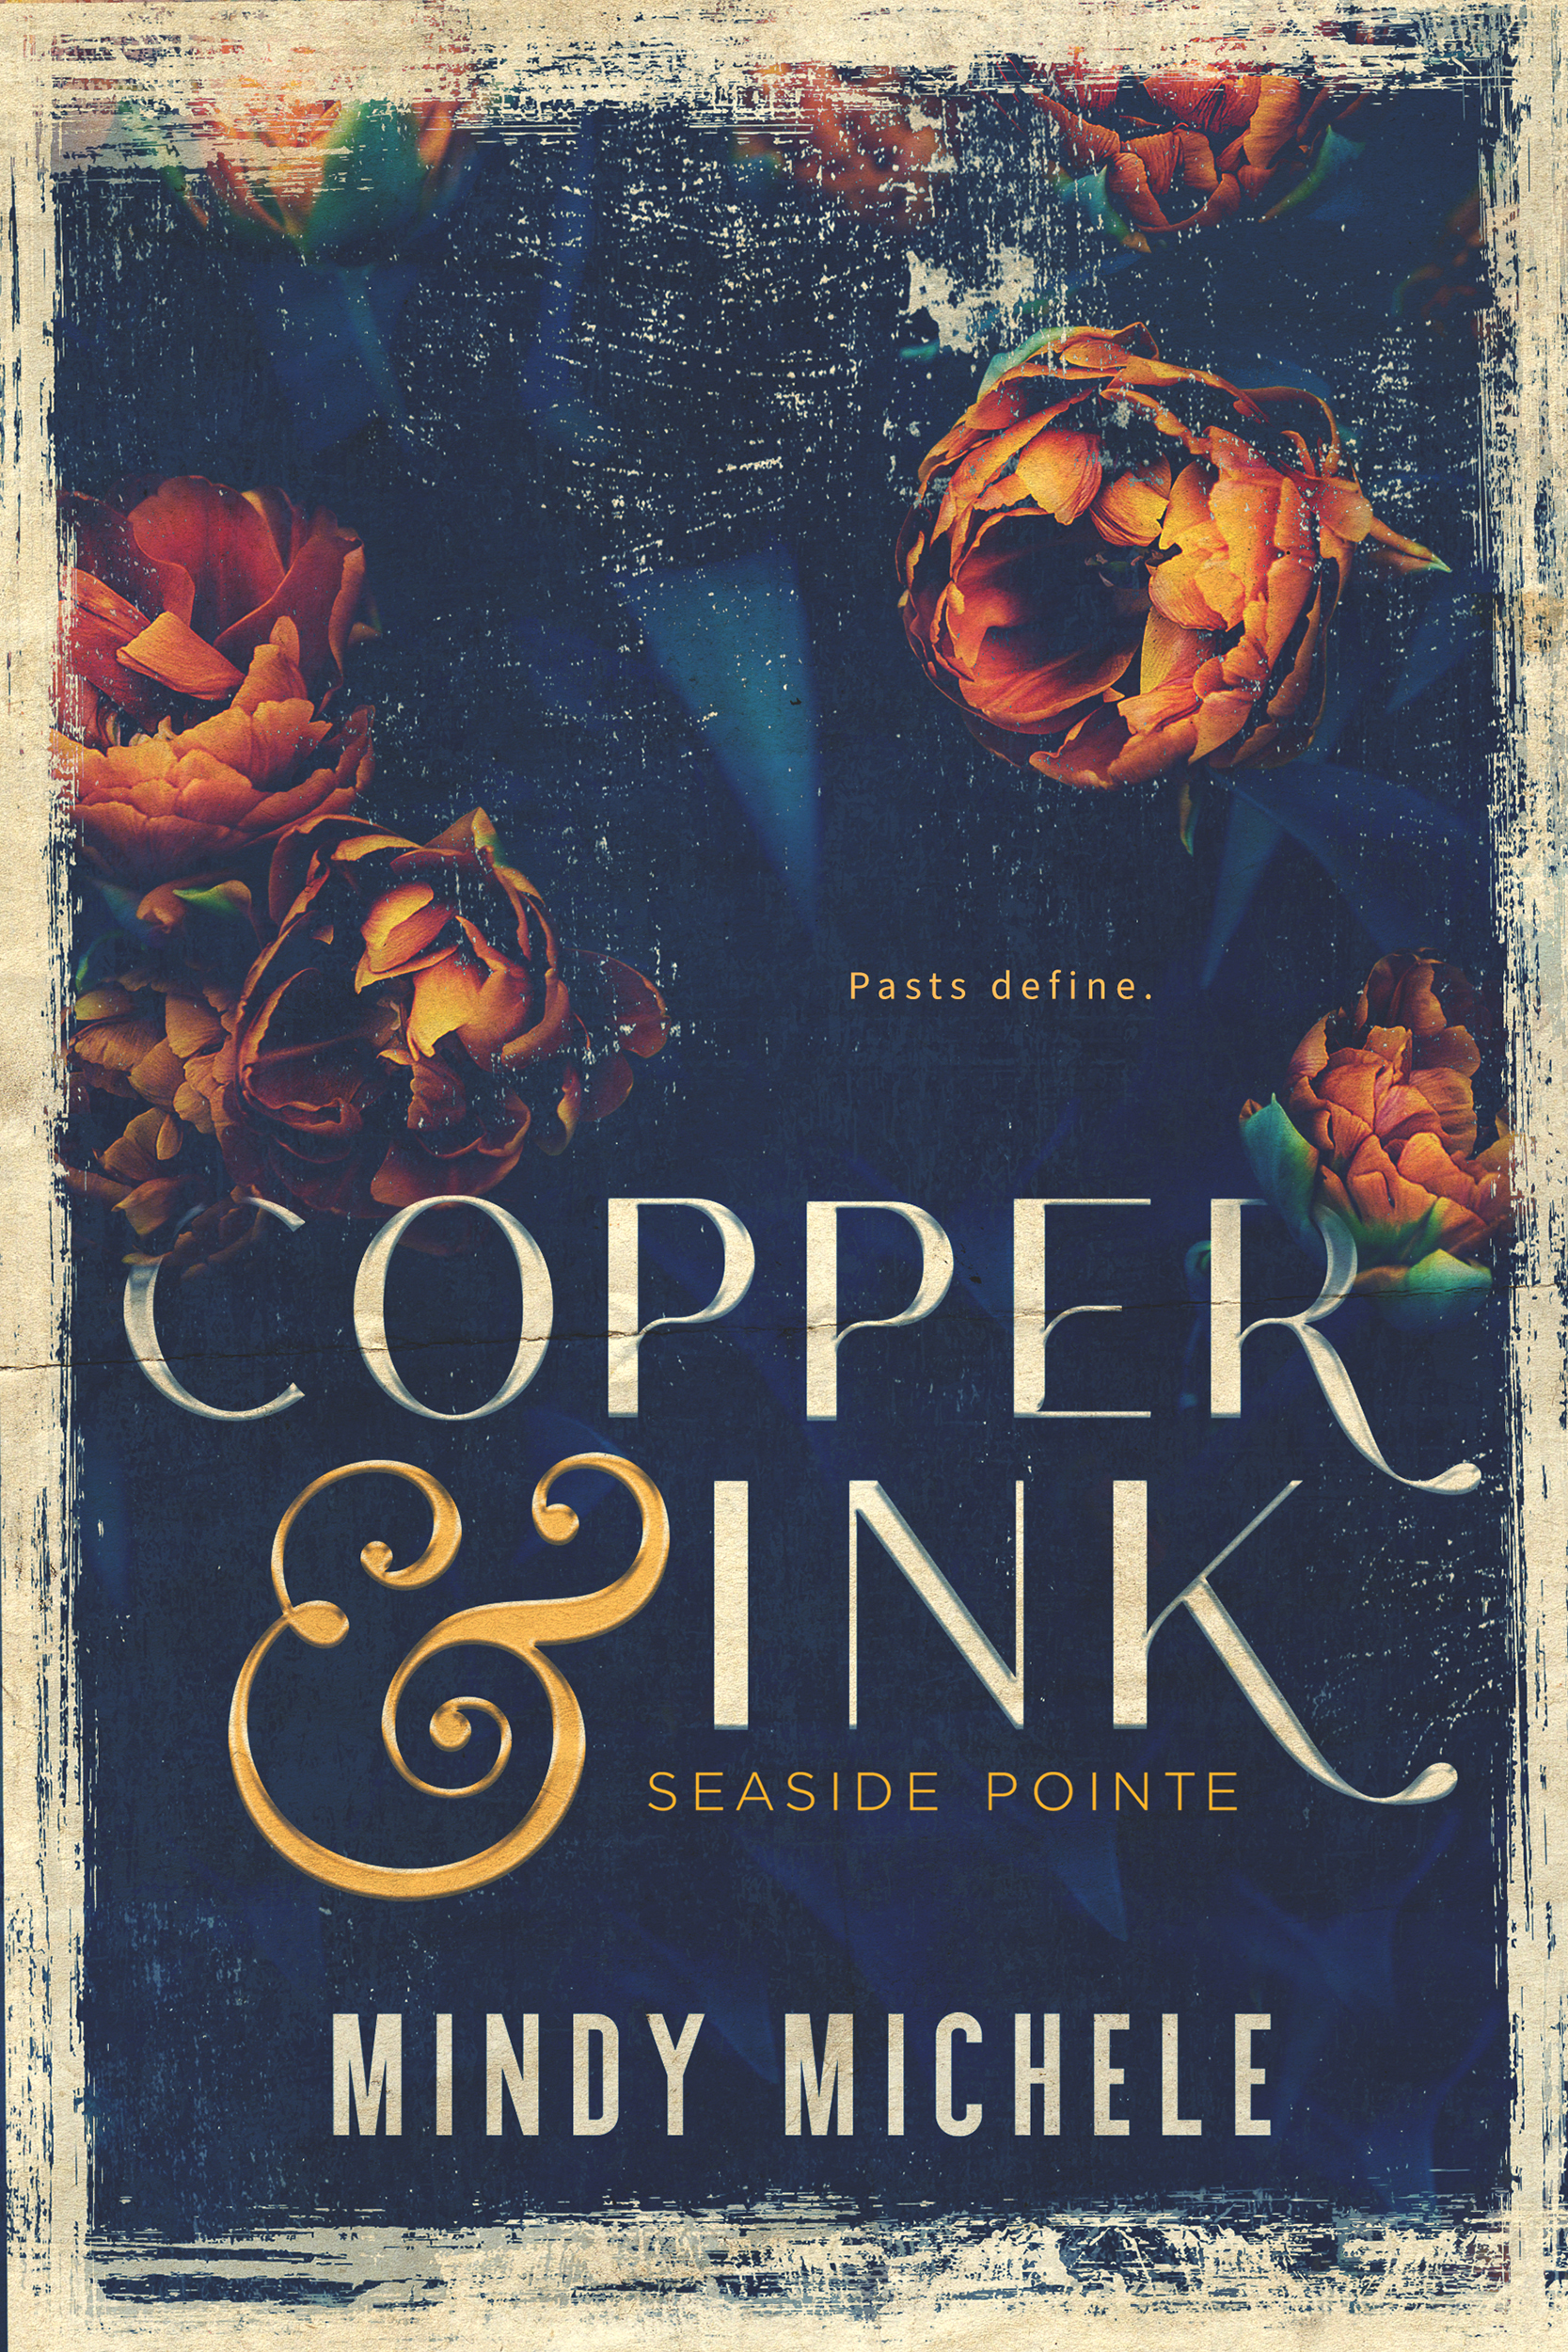 Copper & Ink